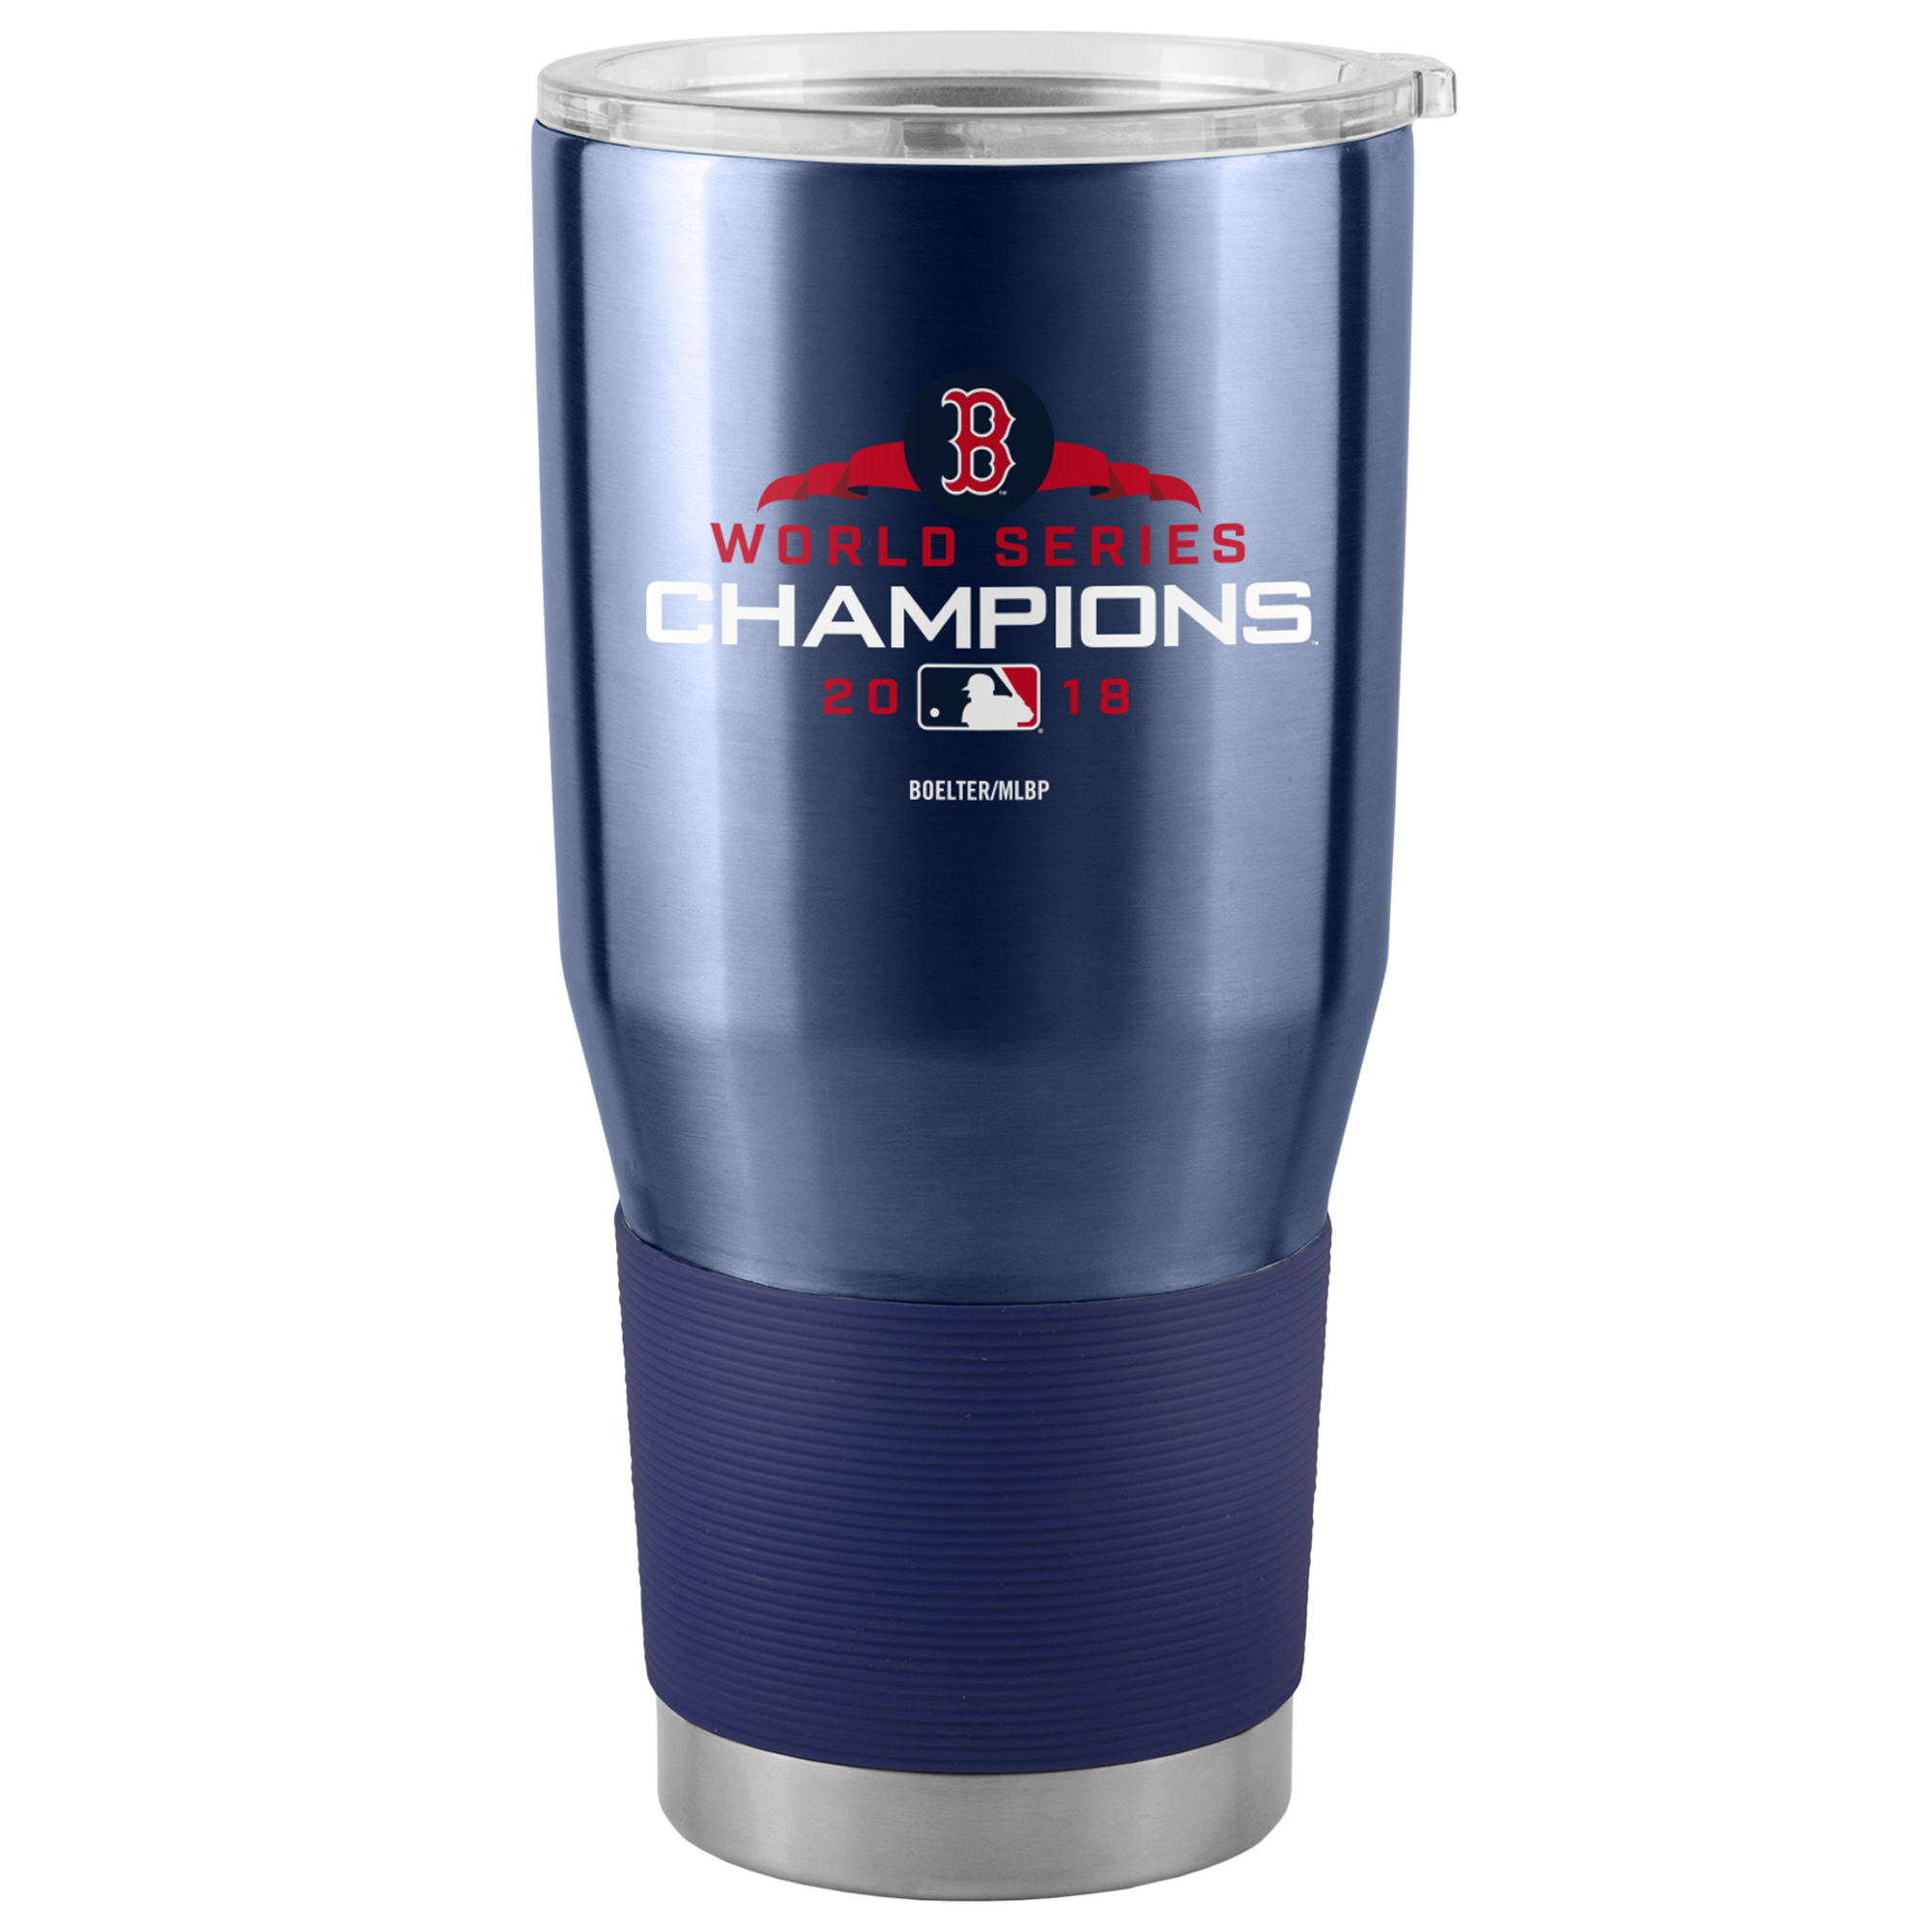 Boston Red Sox 2018 World Series Champions 30oz. Curved Ultra Tumbler - Navy - No Size